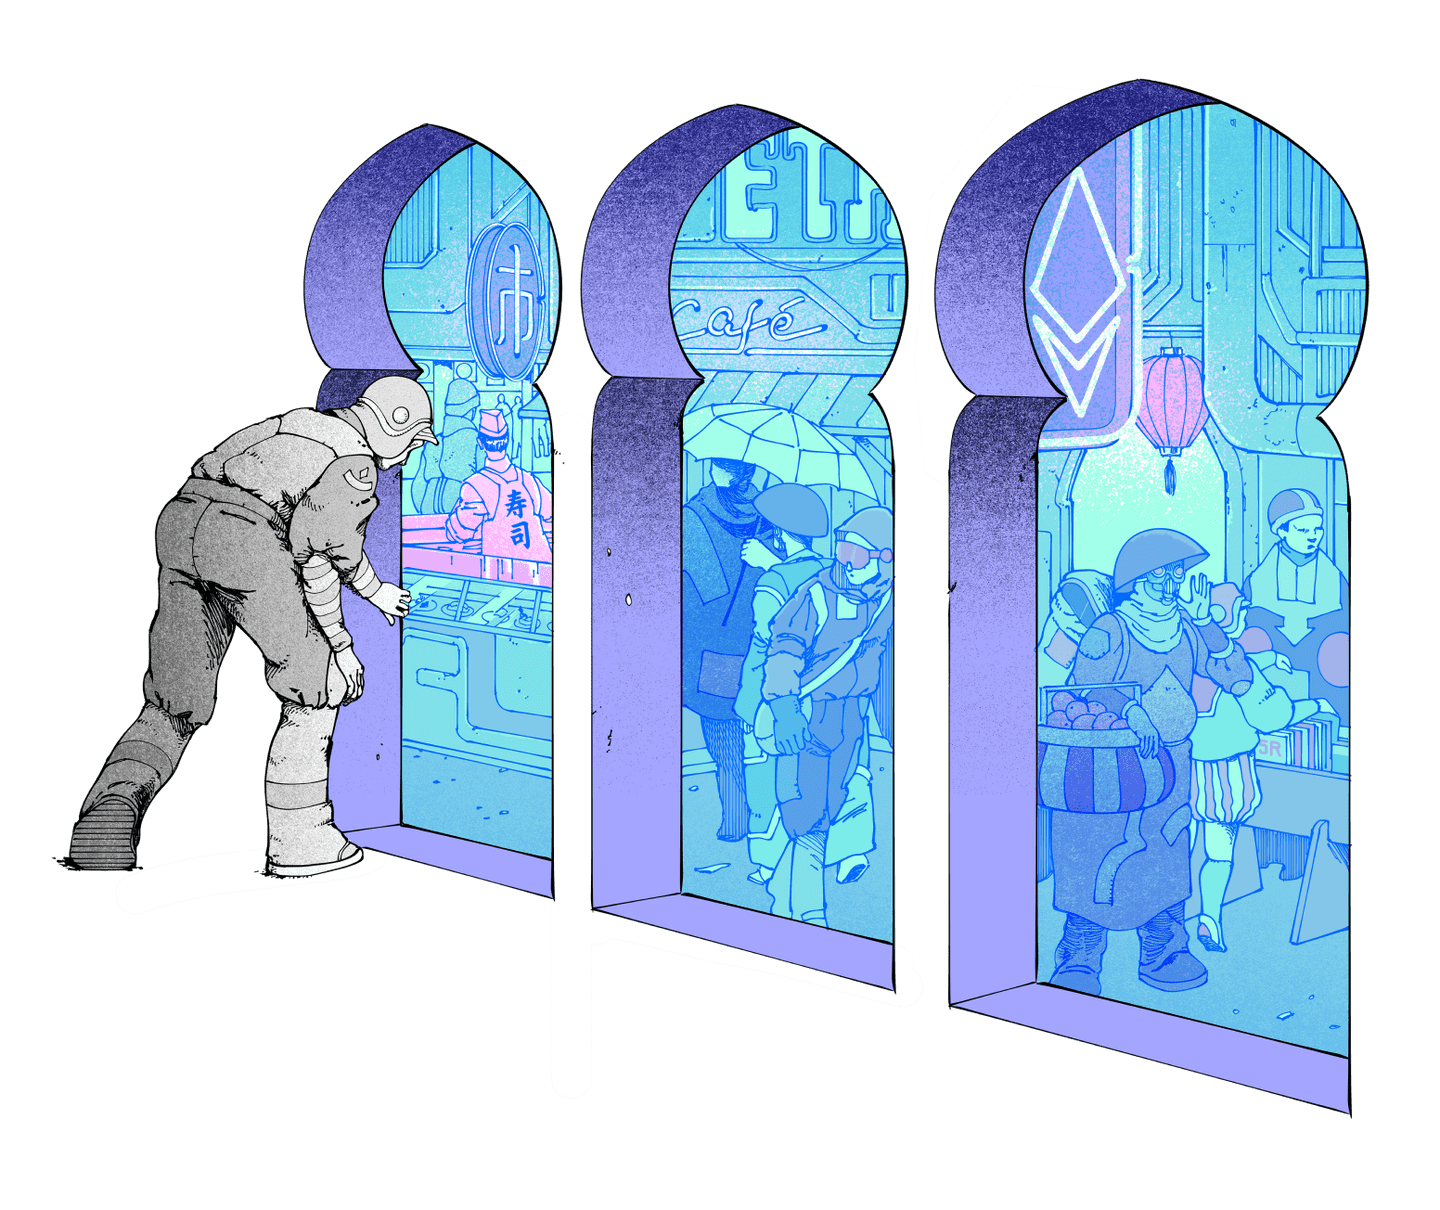 Illustration of a person peering into a bazaar, meant to represent Ethereum.